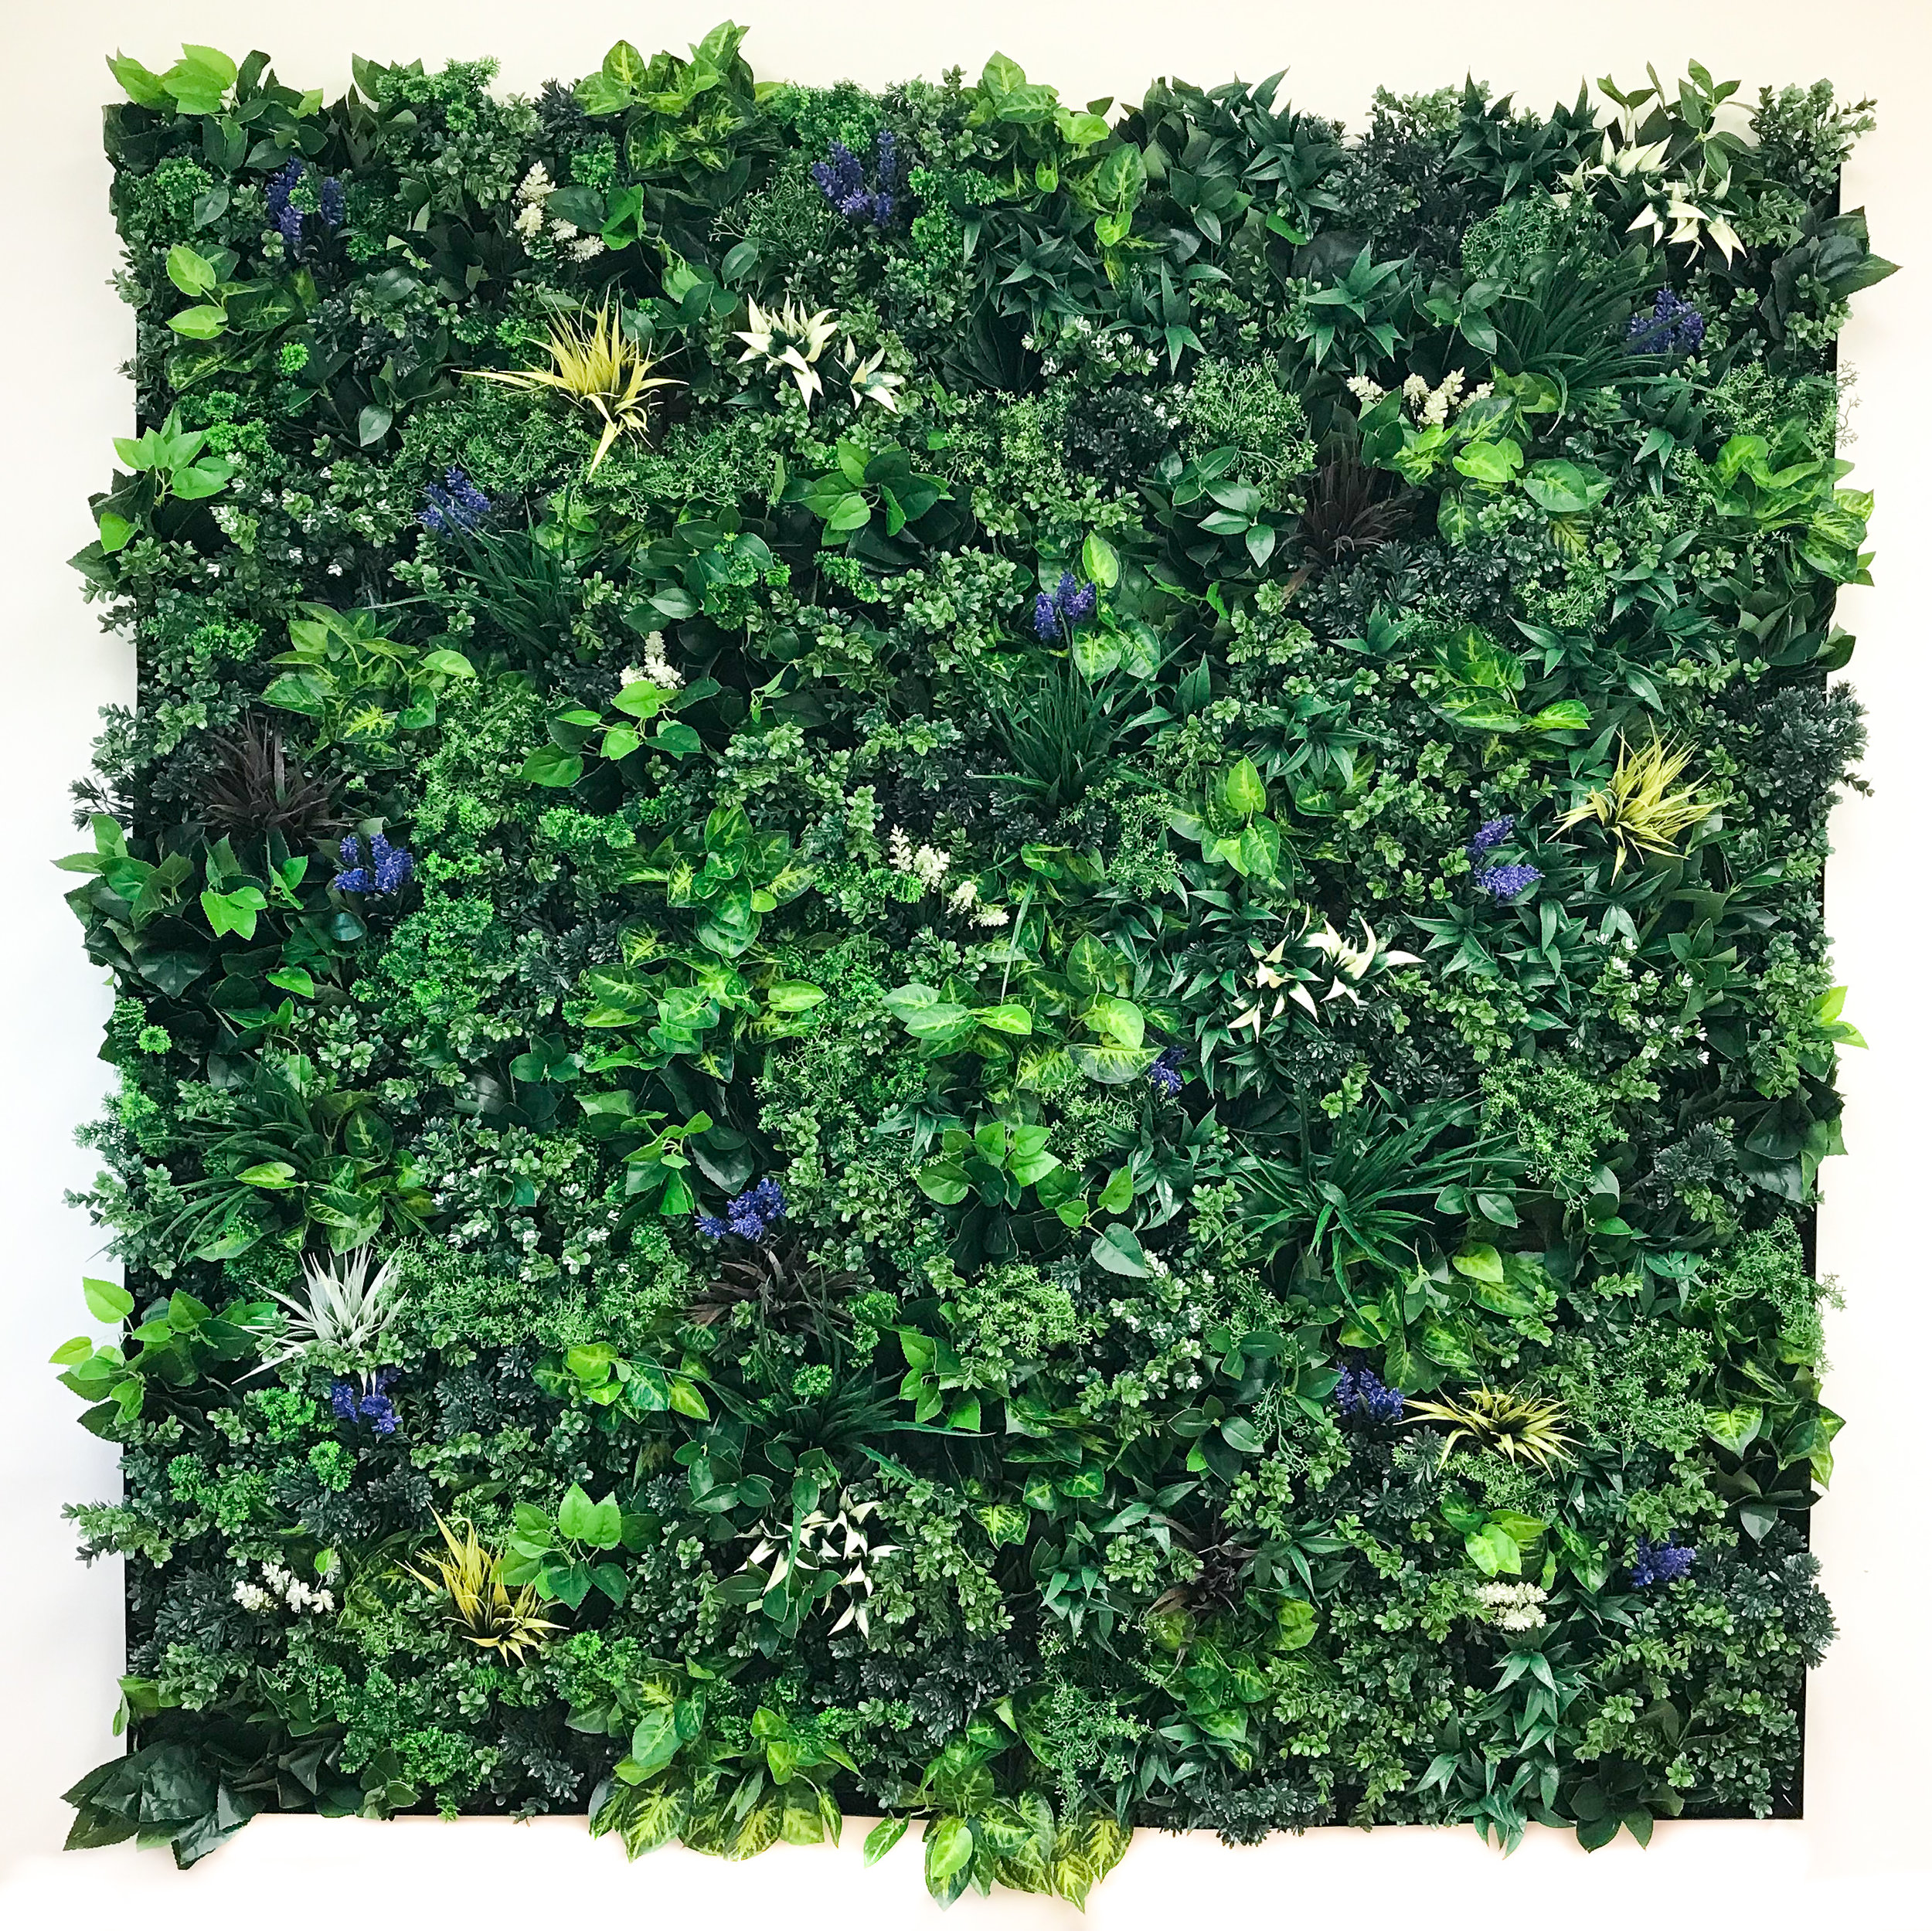 Leafy ALW Panels with Optional Colorful Plants  A closeup view of the 6'x6' ALW wall in the Suite Plants office.